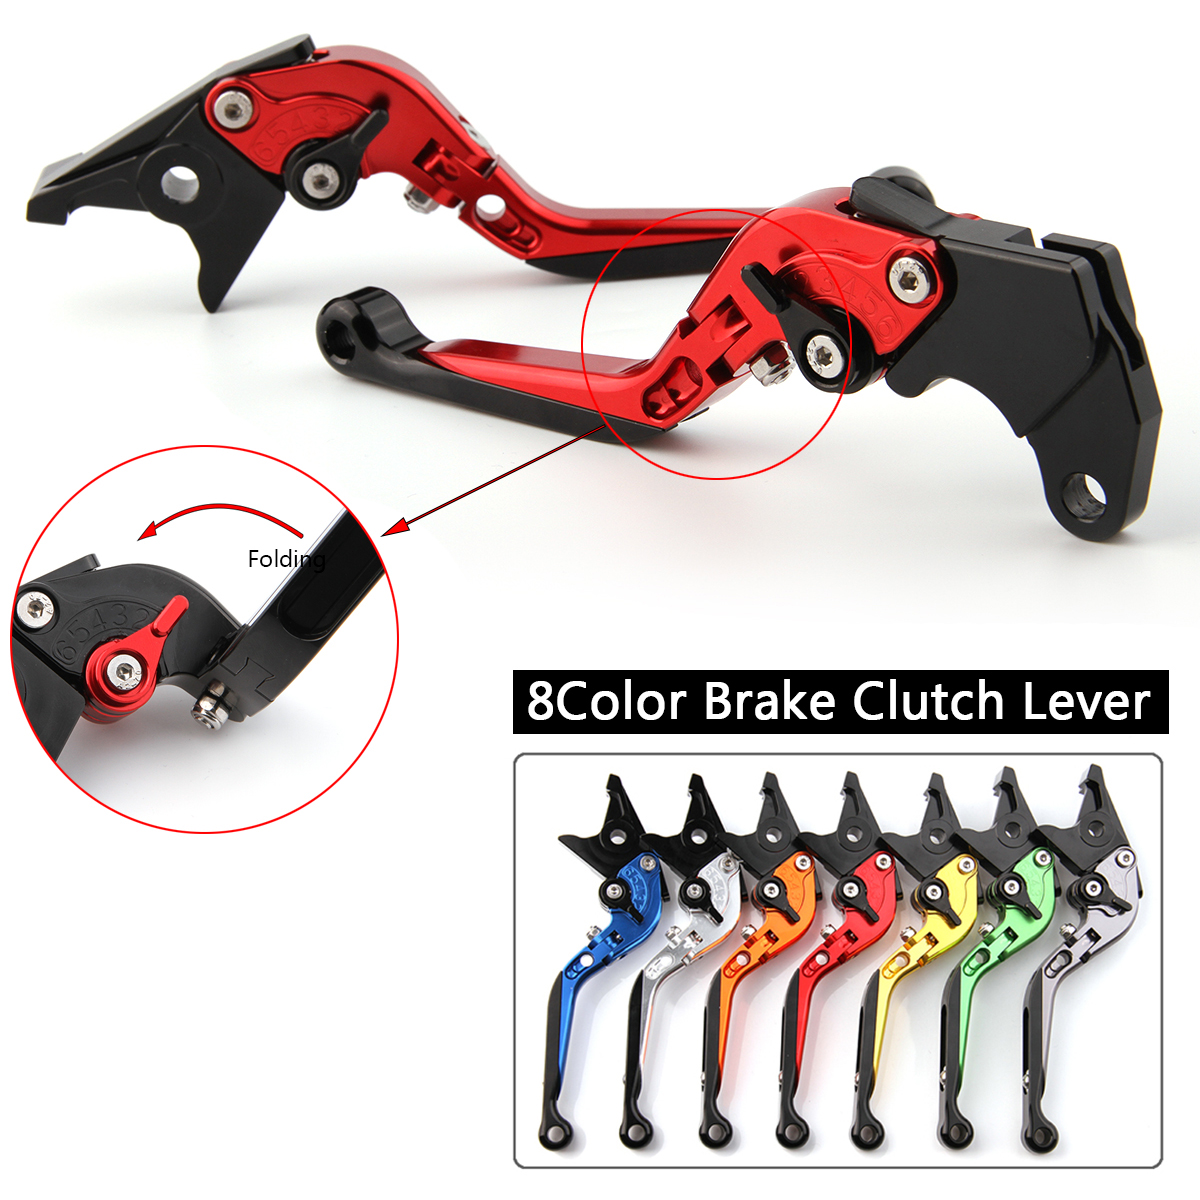 CNC Levers for Honda CBR929RR CBR 929RR 2000 2001 Motorcycle Adjustable Folding Extendable Brake Clutch